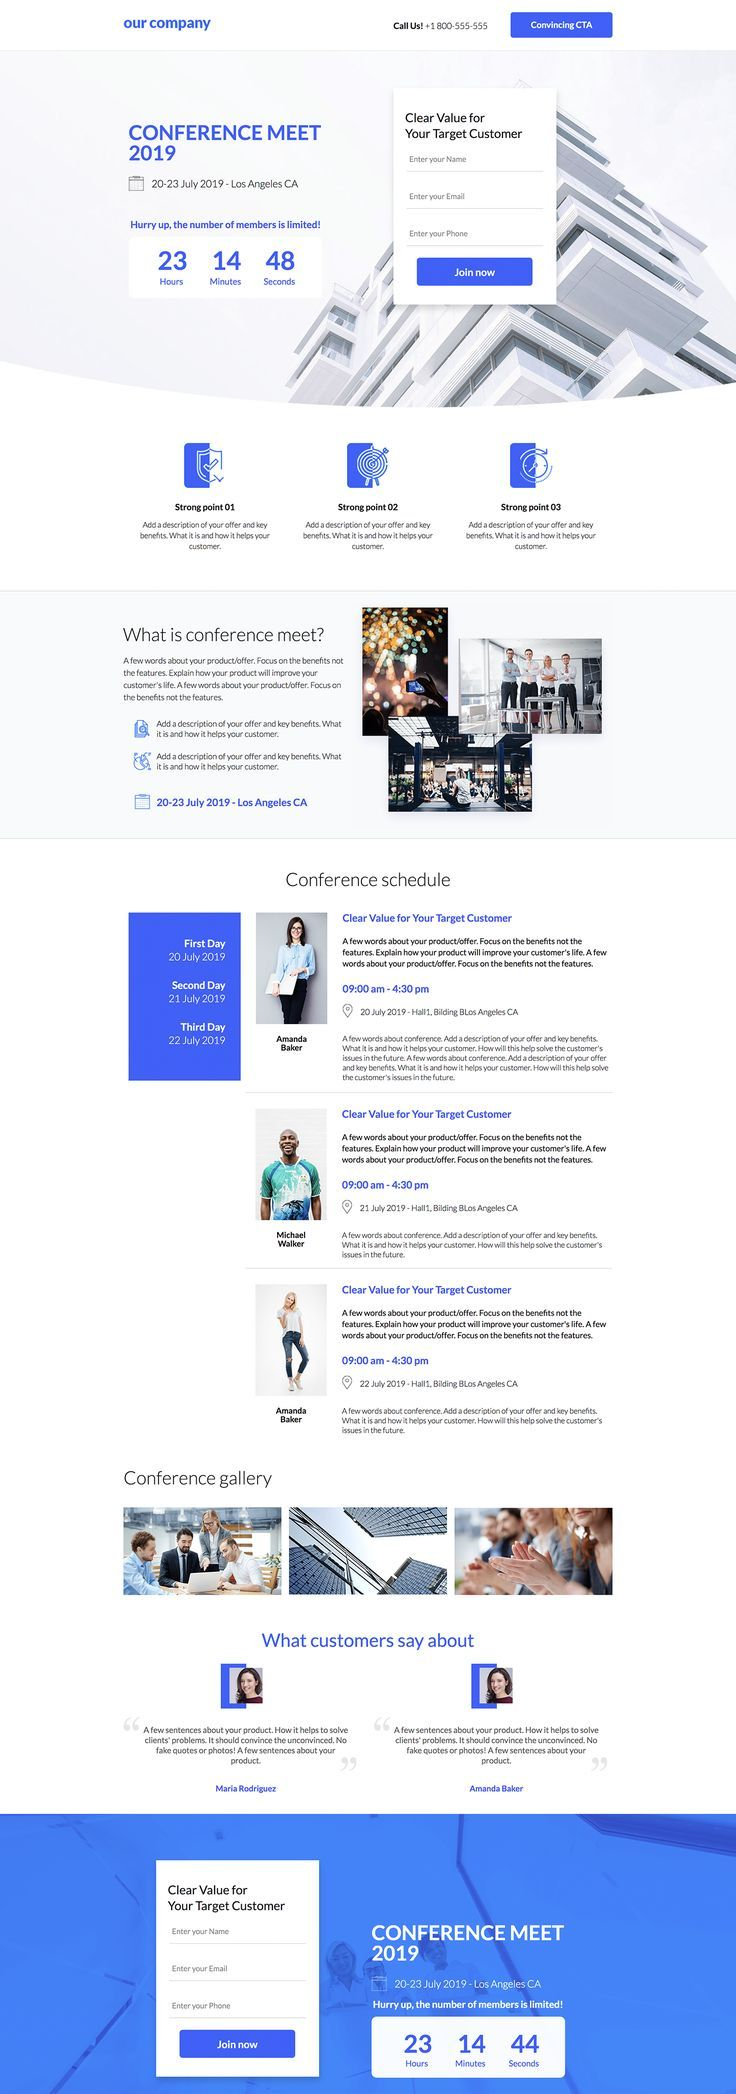 Conference Sign Up Landing Page Template In 2020 Conference Design Landing Page Inspiration Landing Page